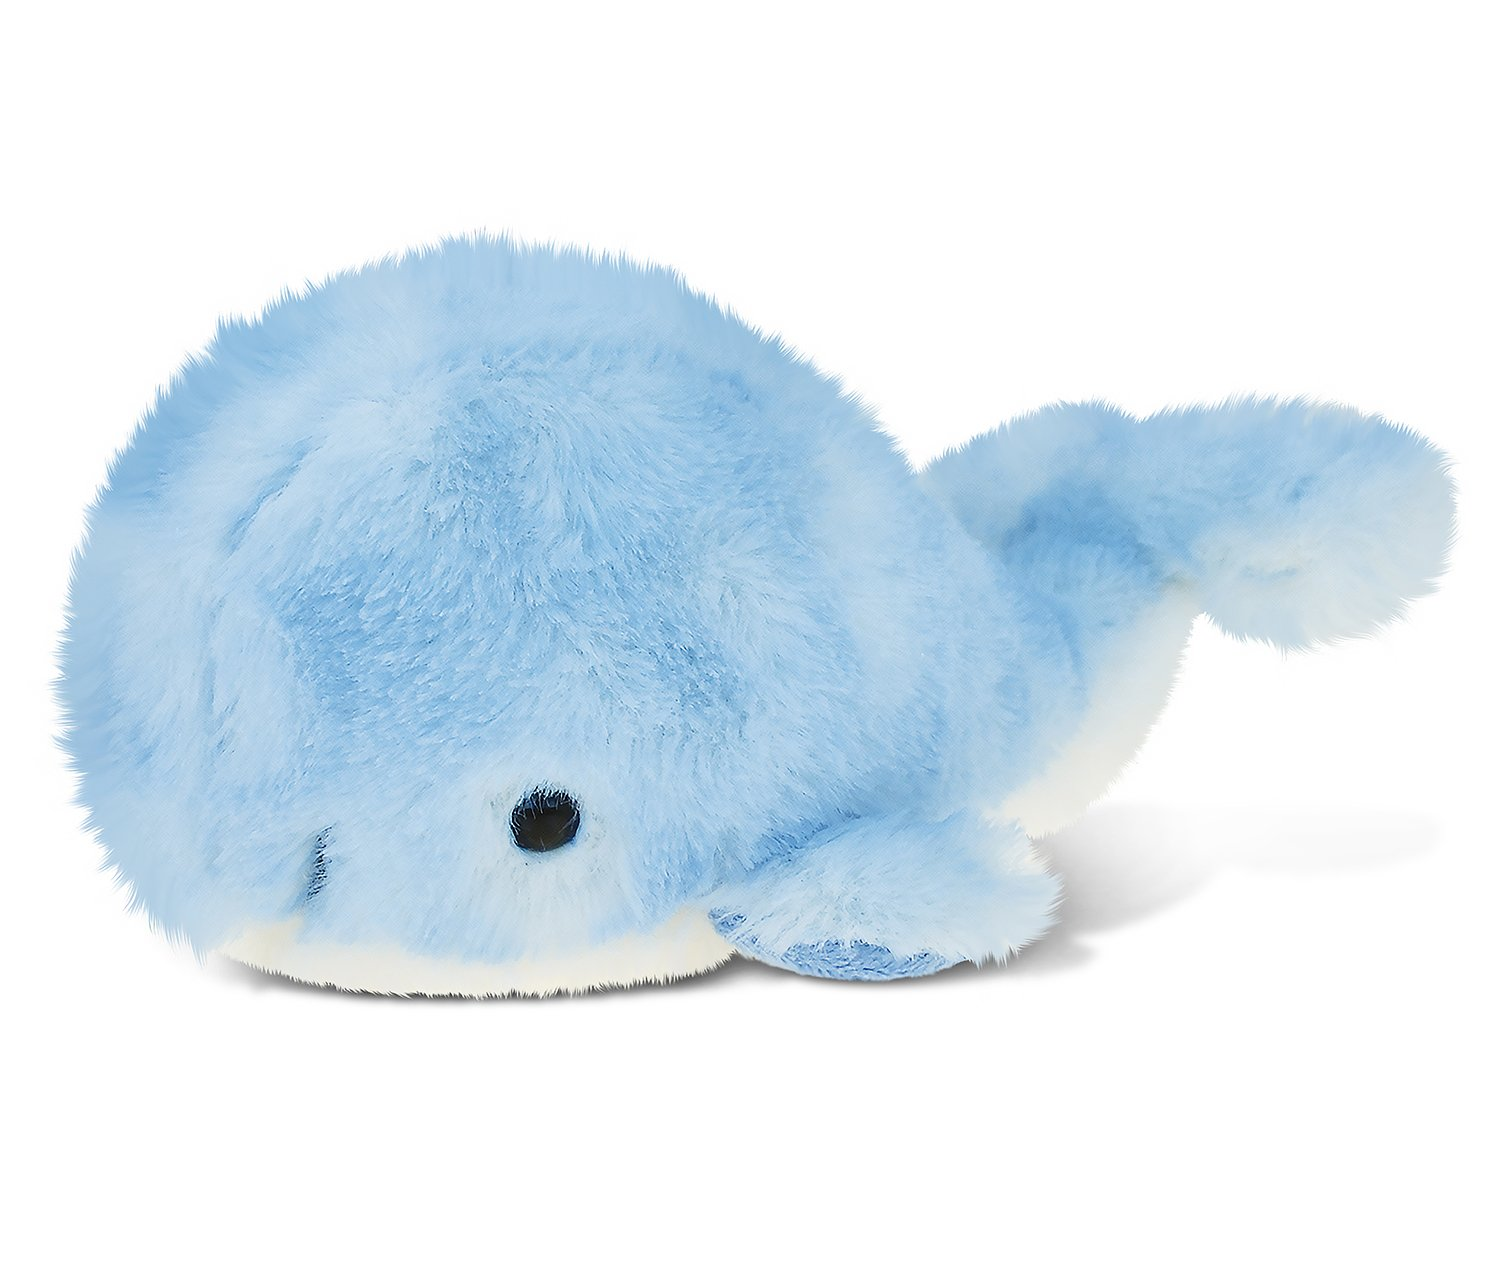 Puzzled Sky Blue Whale Plush, 7 Inch Collectible Decorative Fluffy Stuffed Animal Soft Take A Long Plushie Pillow Squishes Washable Cushy Mini Doll Ocean Sea Life Themed Kids Toddlers Toy & Games